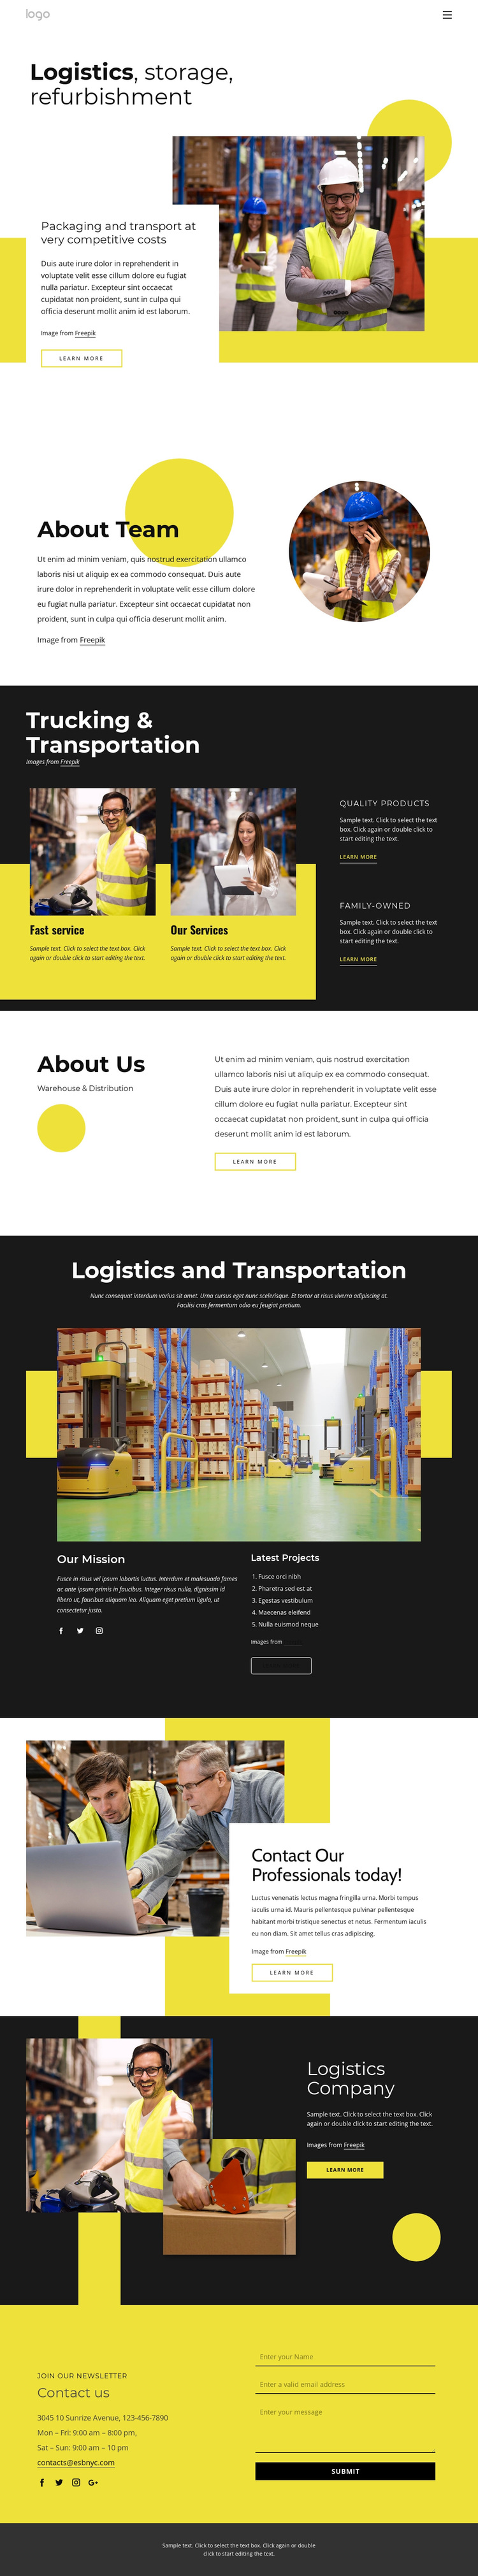 Contact our professionals today Template